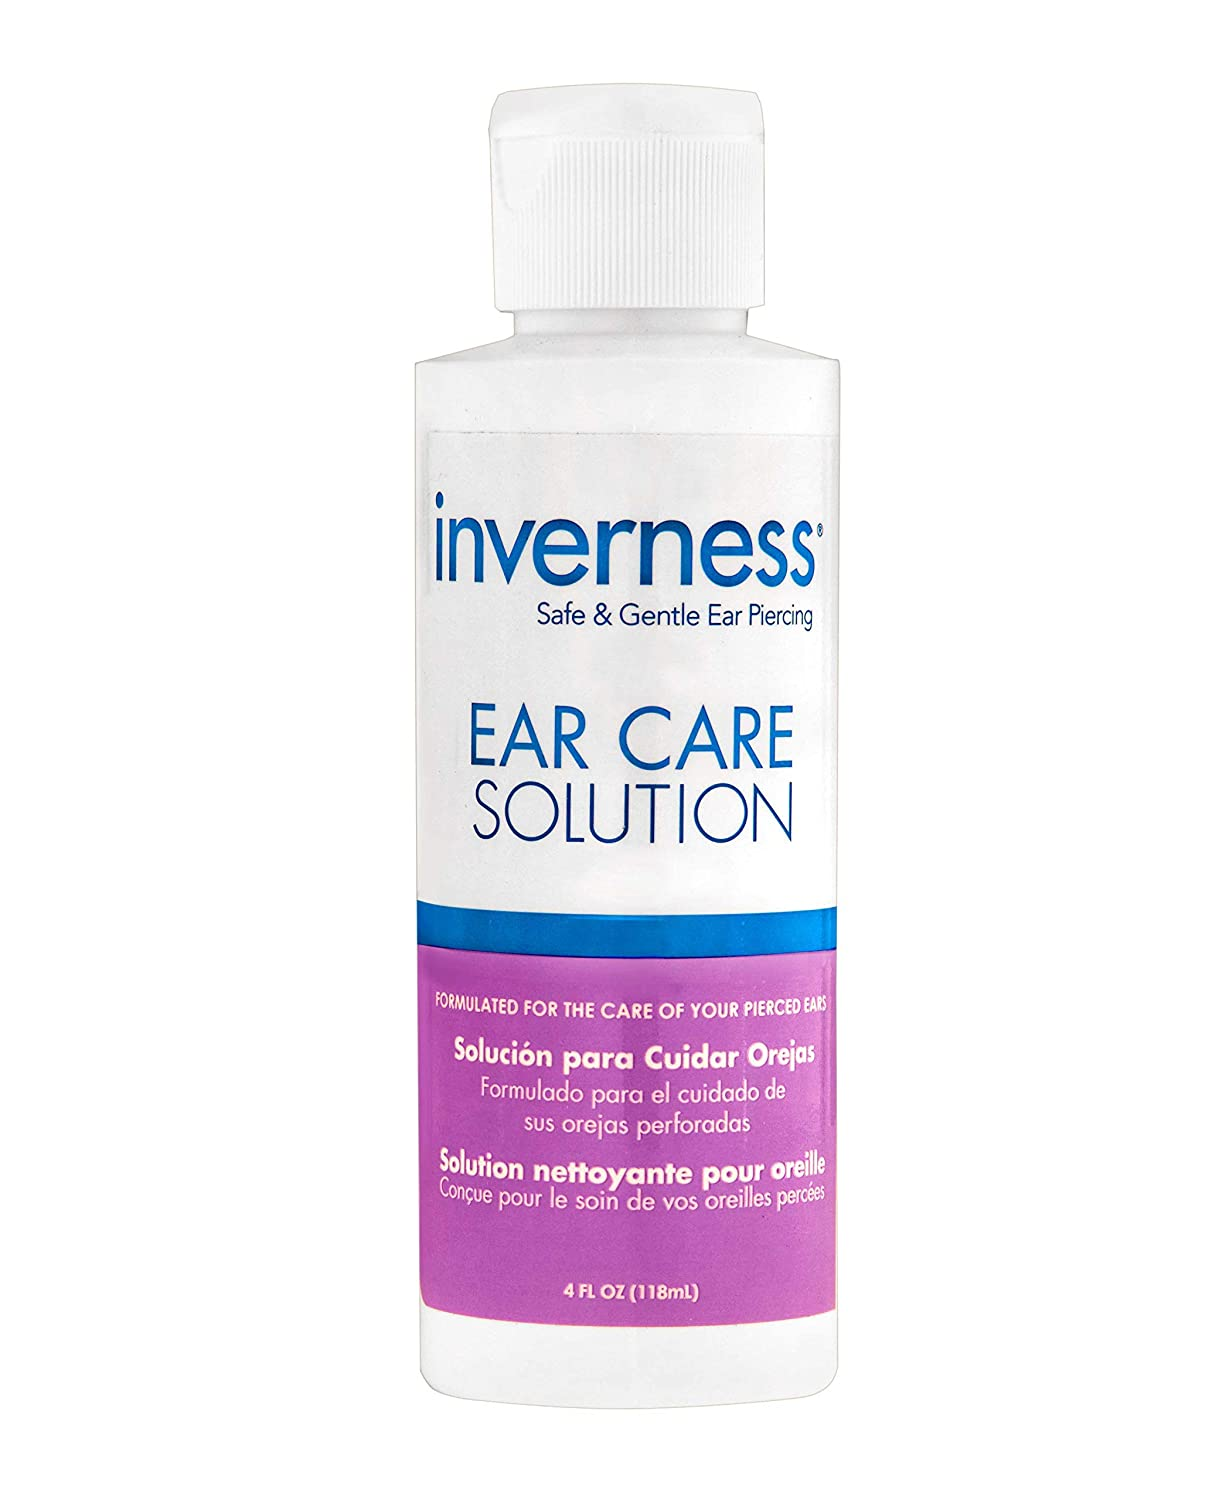 New INVERNESS Ear Care Solution 4 oz | After Piercing |